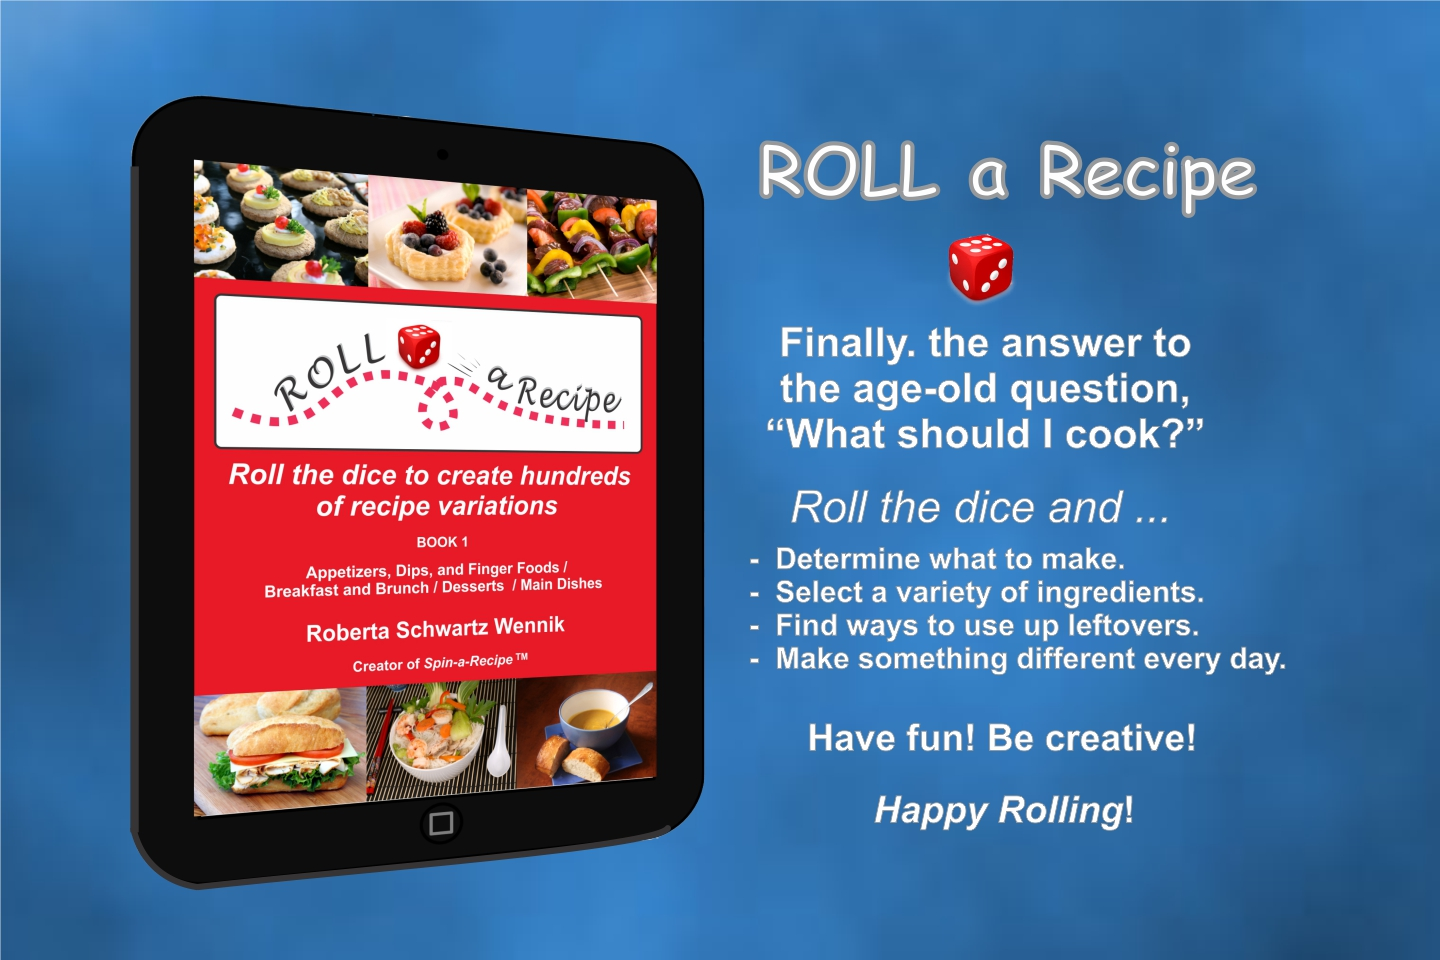 Roll a Recipe cookbook by Roberta Schwartz Wennik